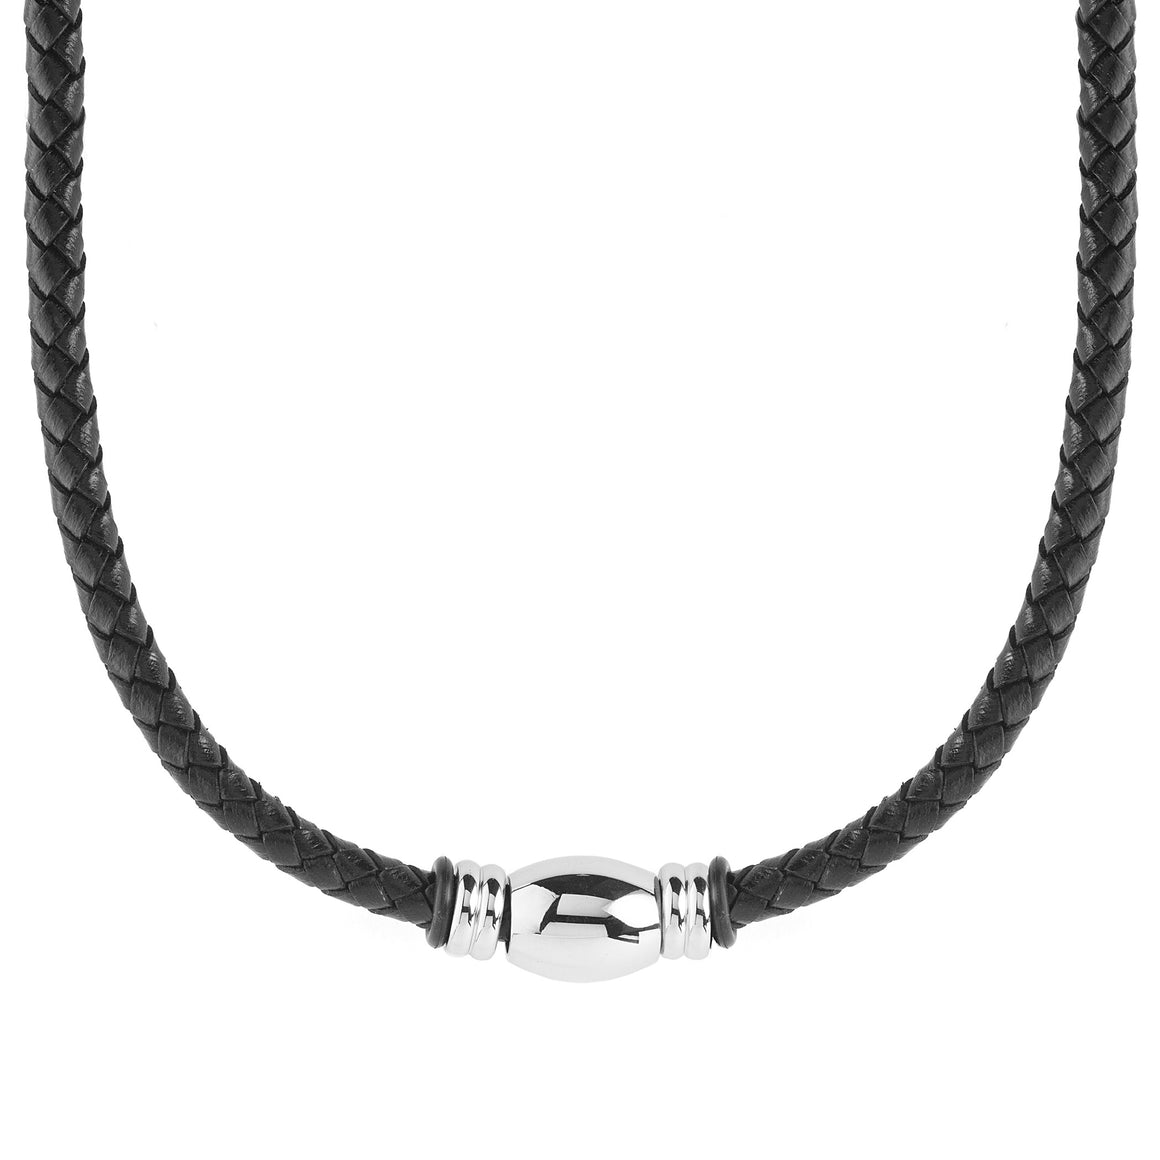 Crucible Men's Stainless Steel Beaded Black Braided Leather Necklace